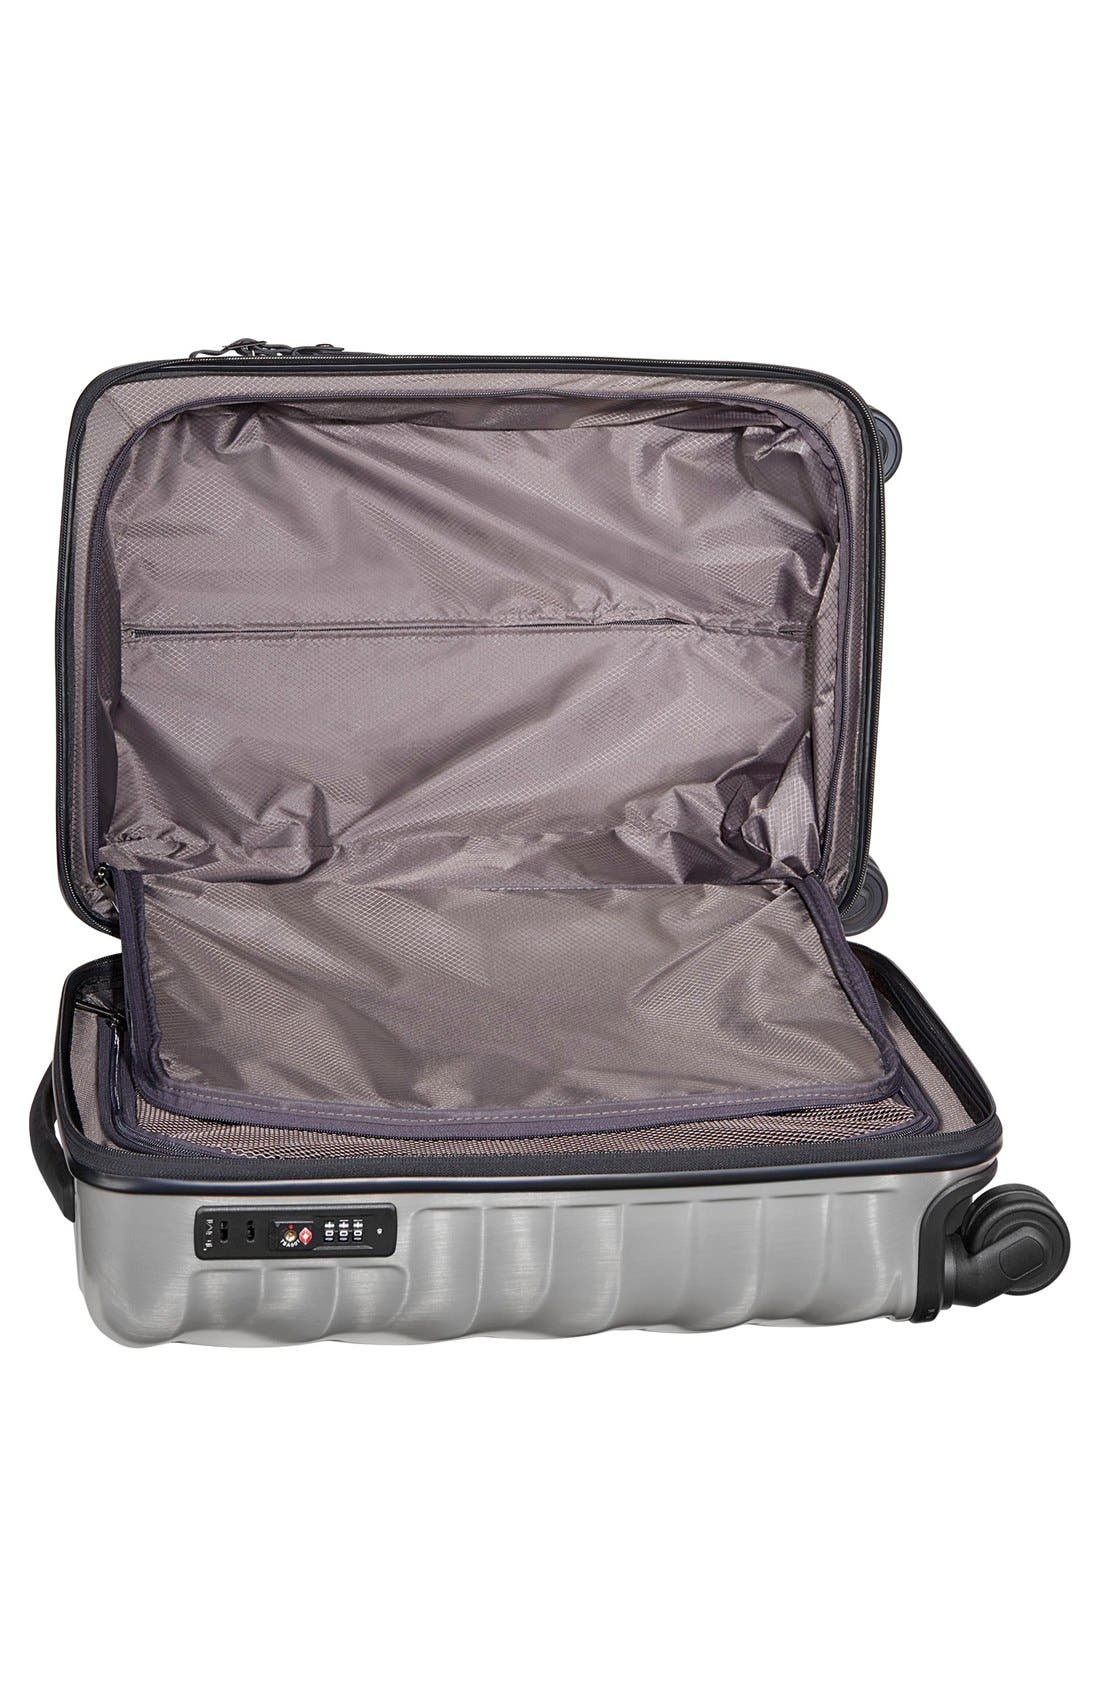 19 Degree 22 Inch Continental Wheeled Carry-On,                             Alternate thumbnail 4, color,                             Silver